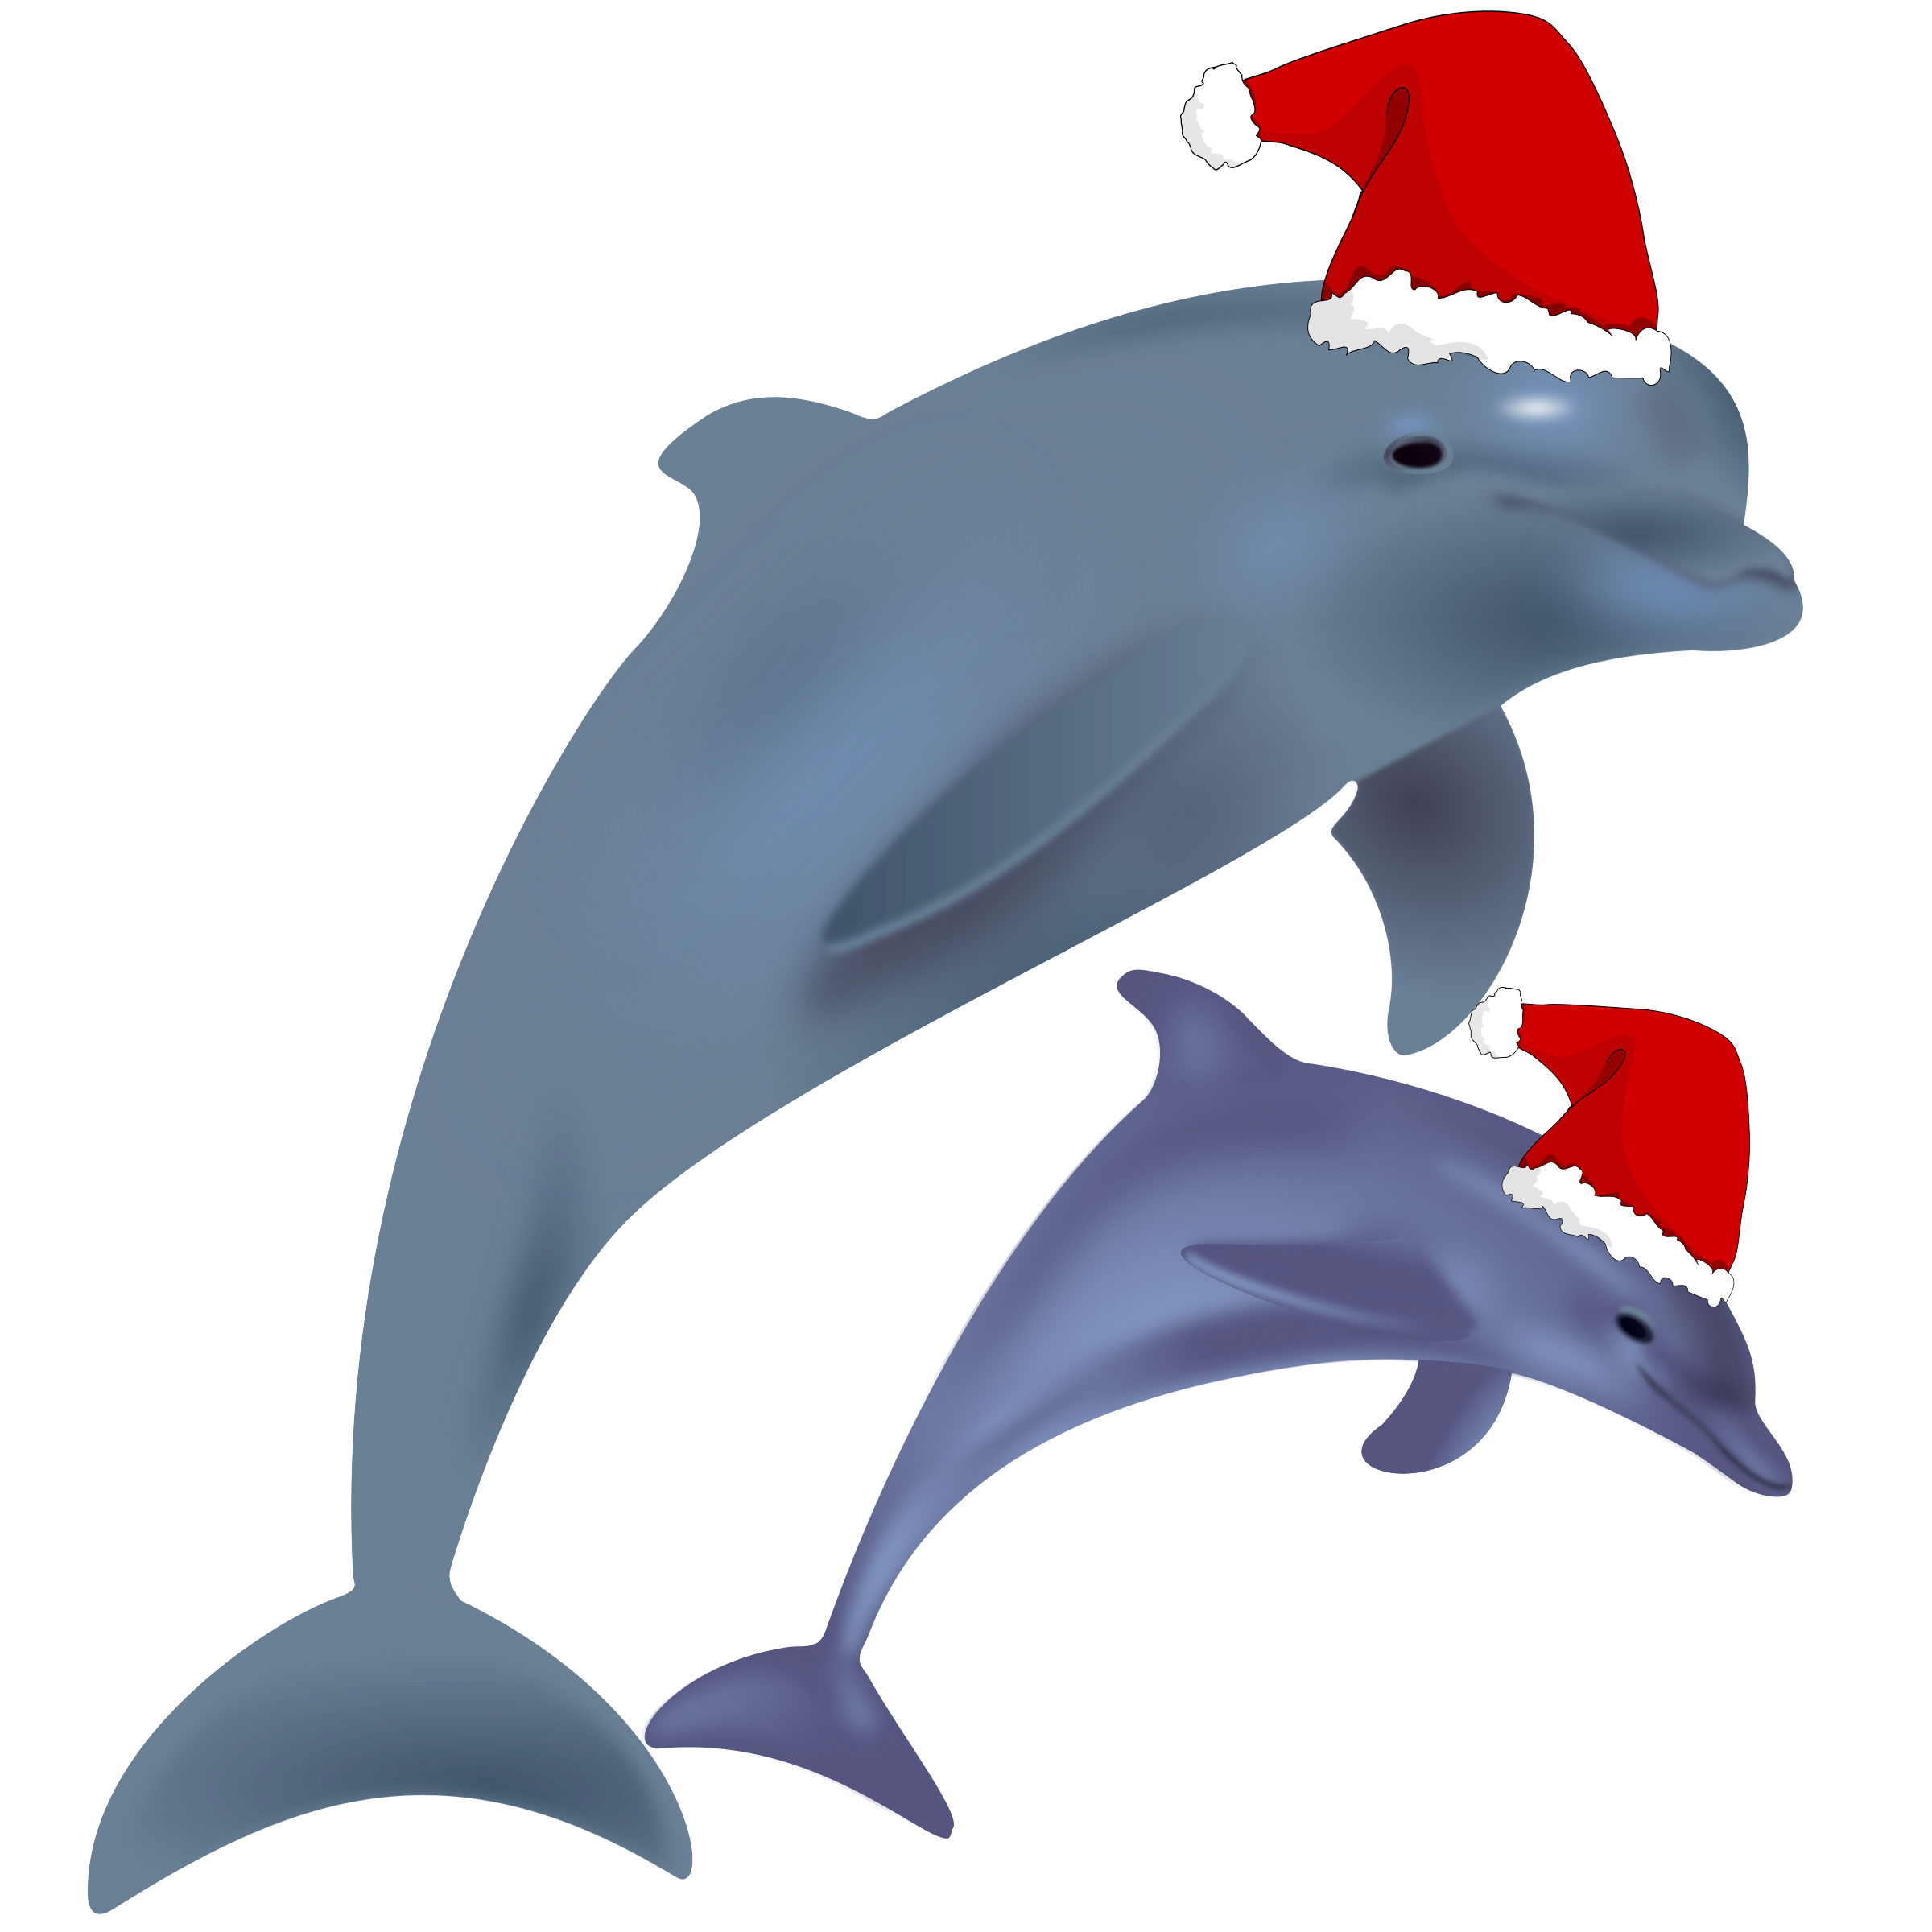 Christmas dolphins big image. Dolphin clipart svg